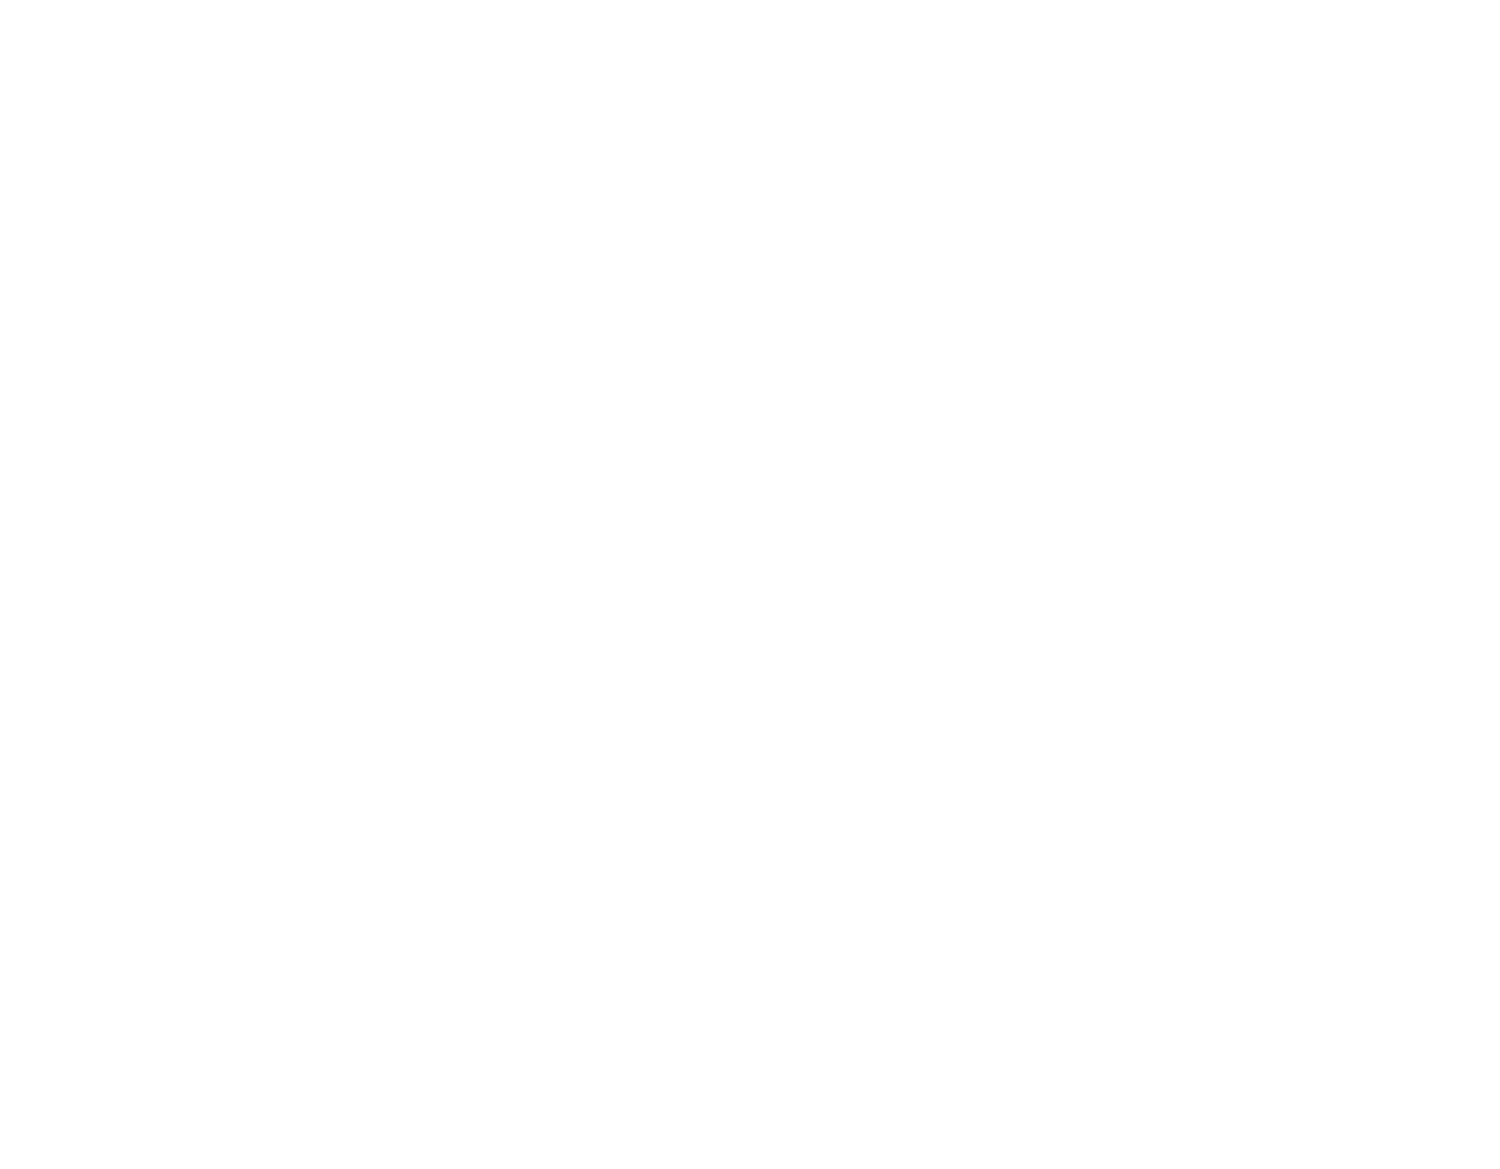 Quarter Oaks Natural Horsemanship